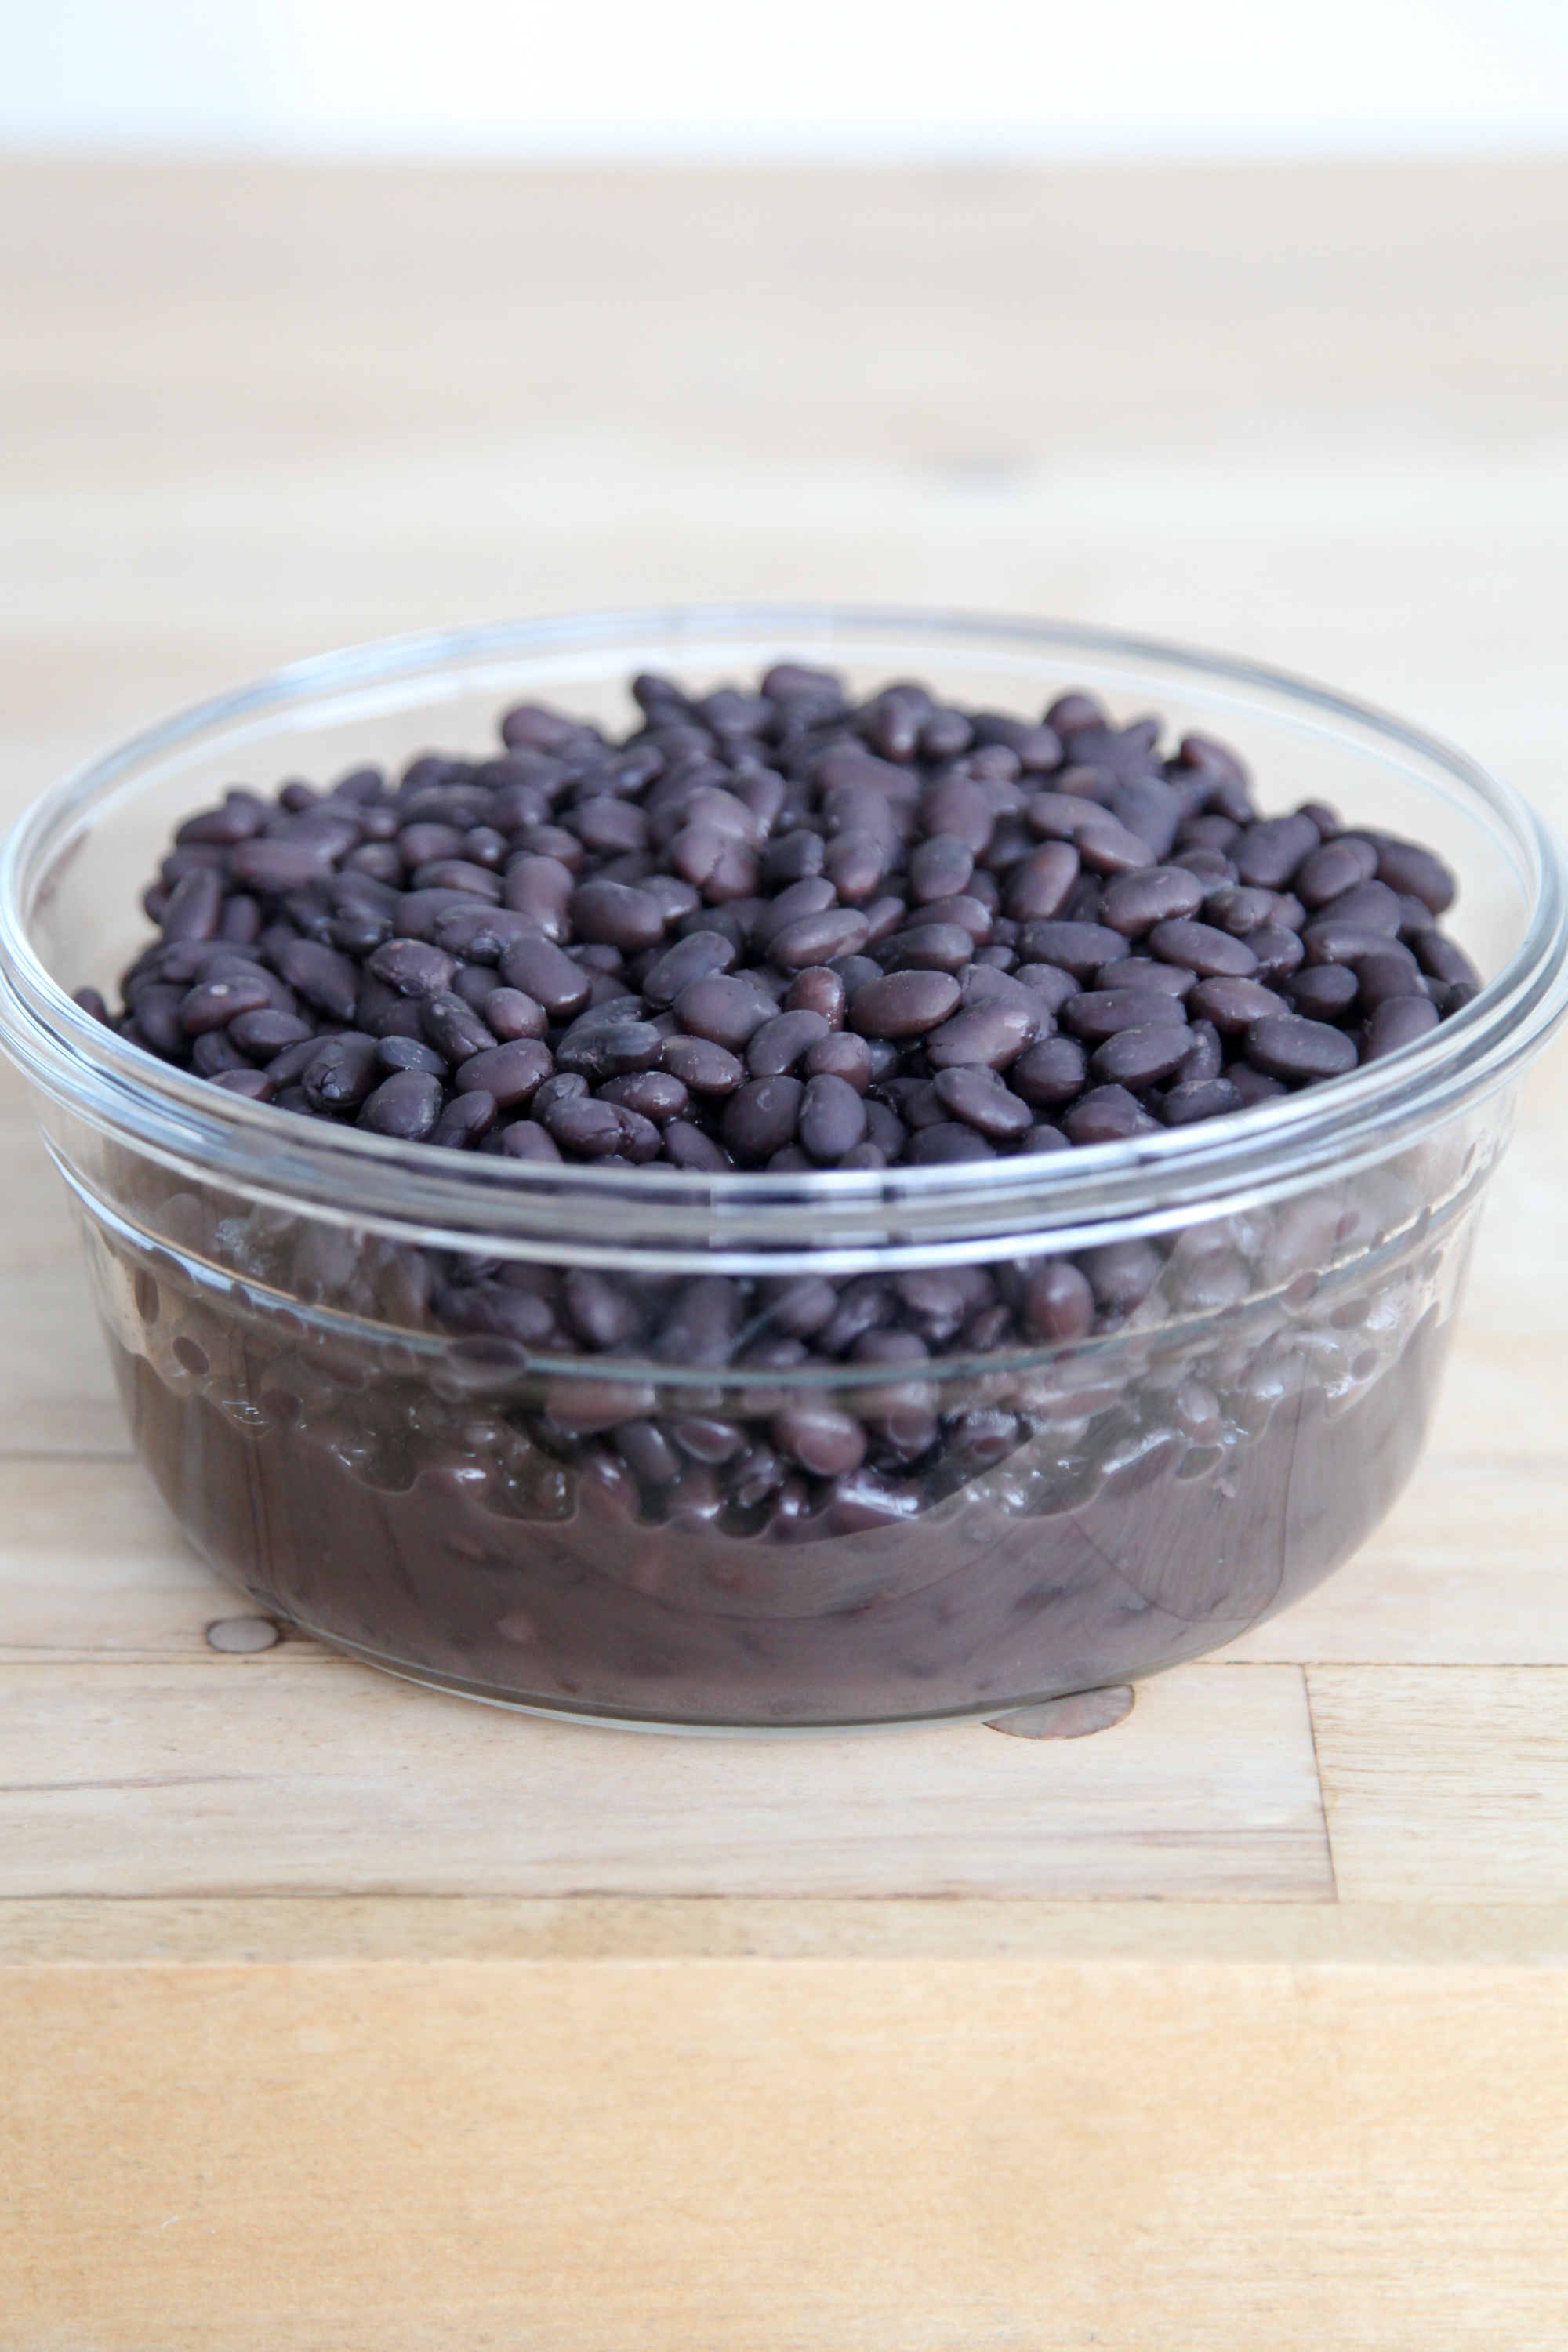 Slow-Cooker Black Beans | amodestfeast.com | A Modest Feast